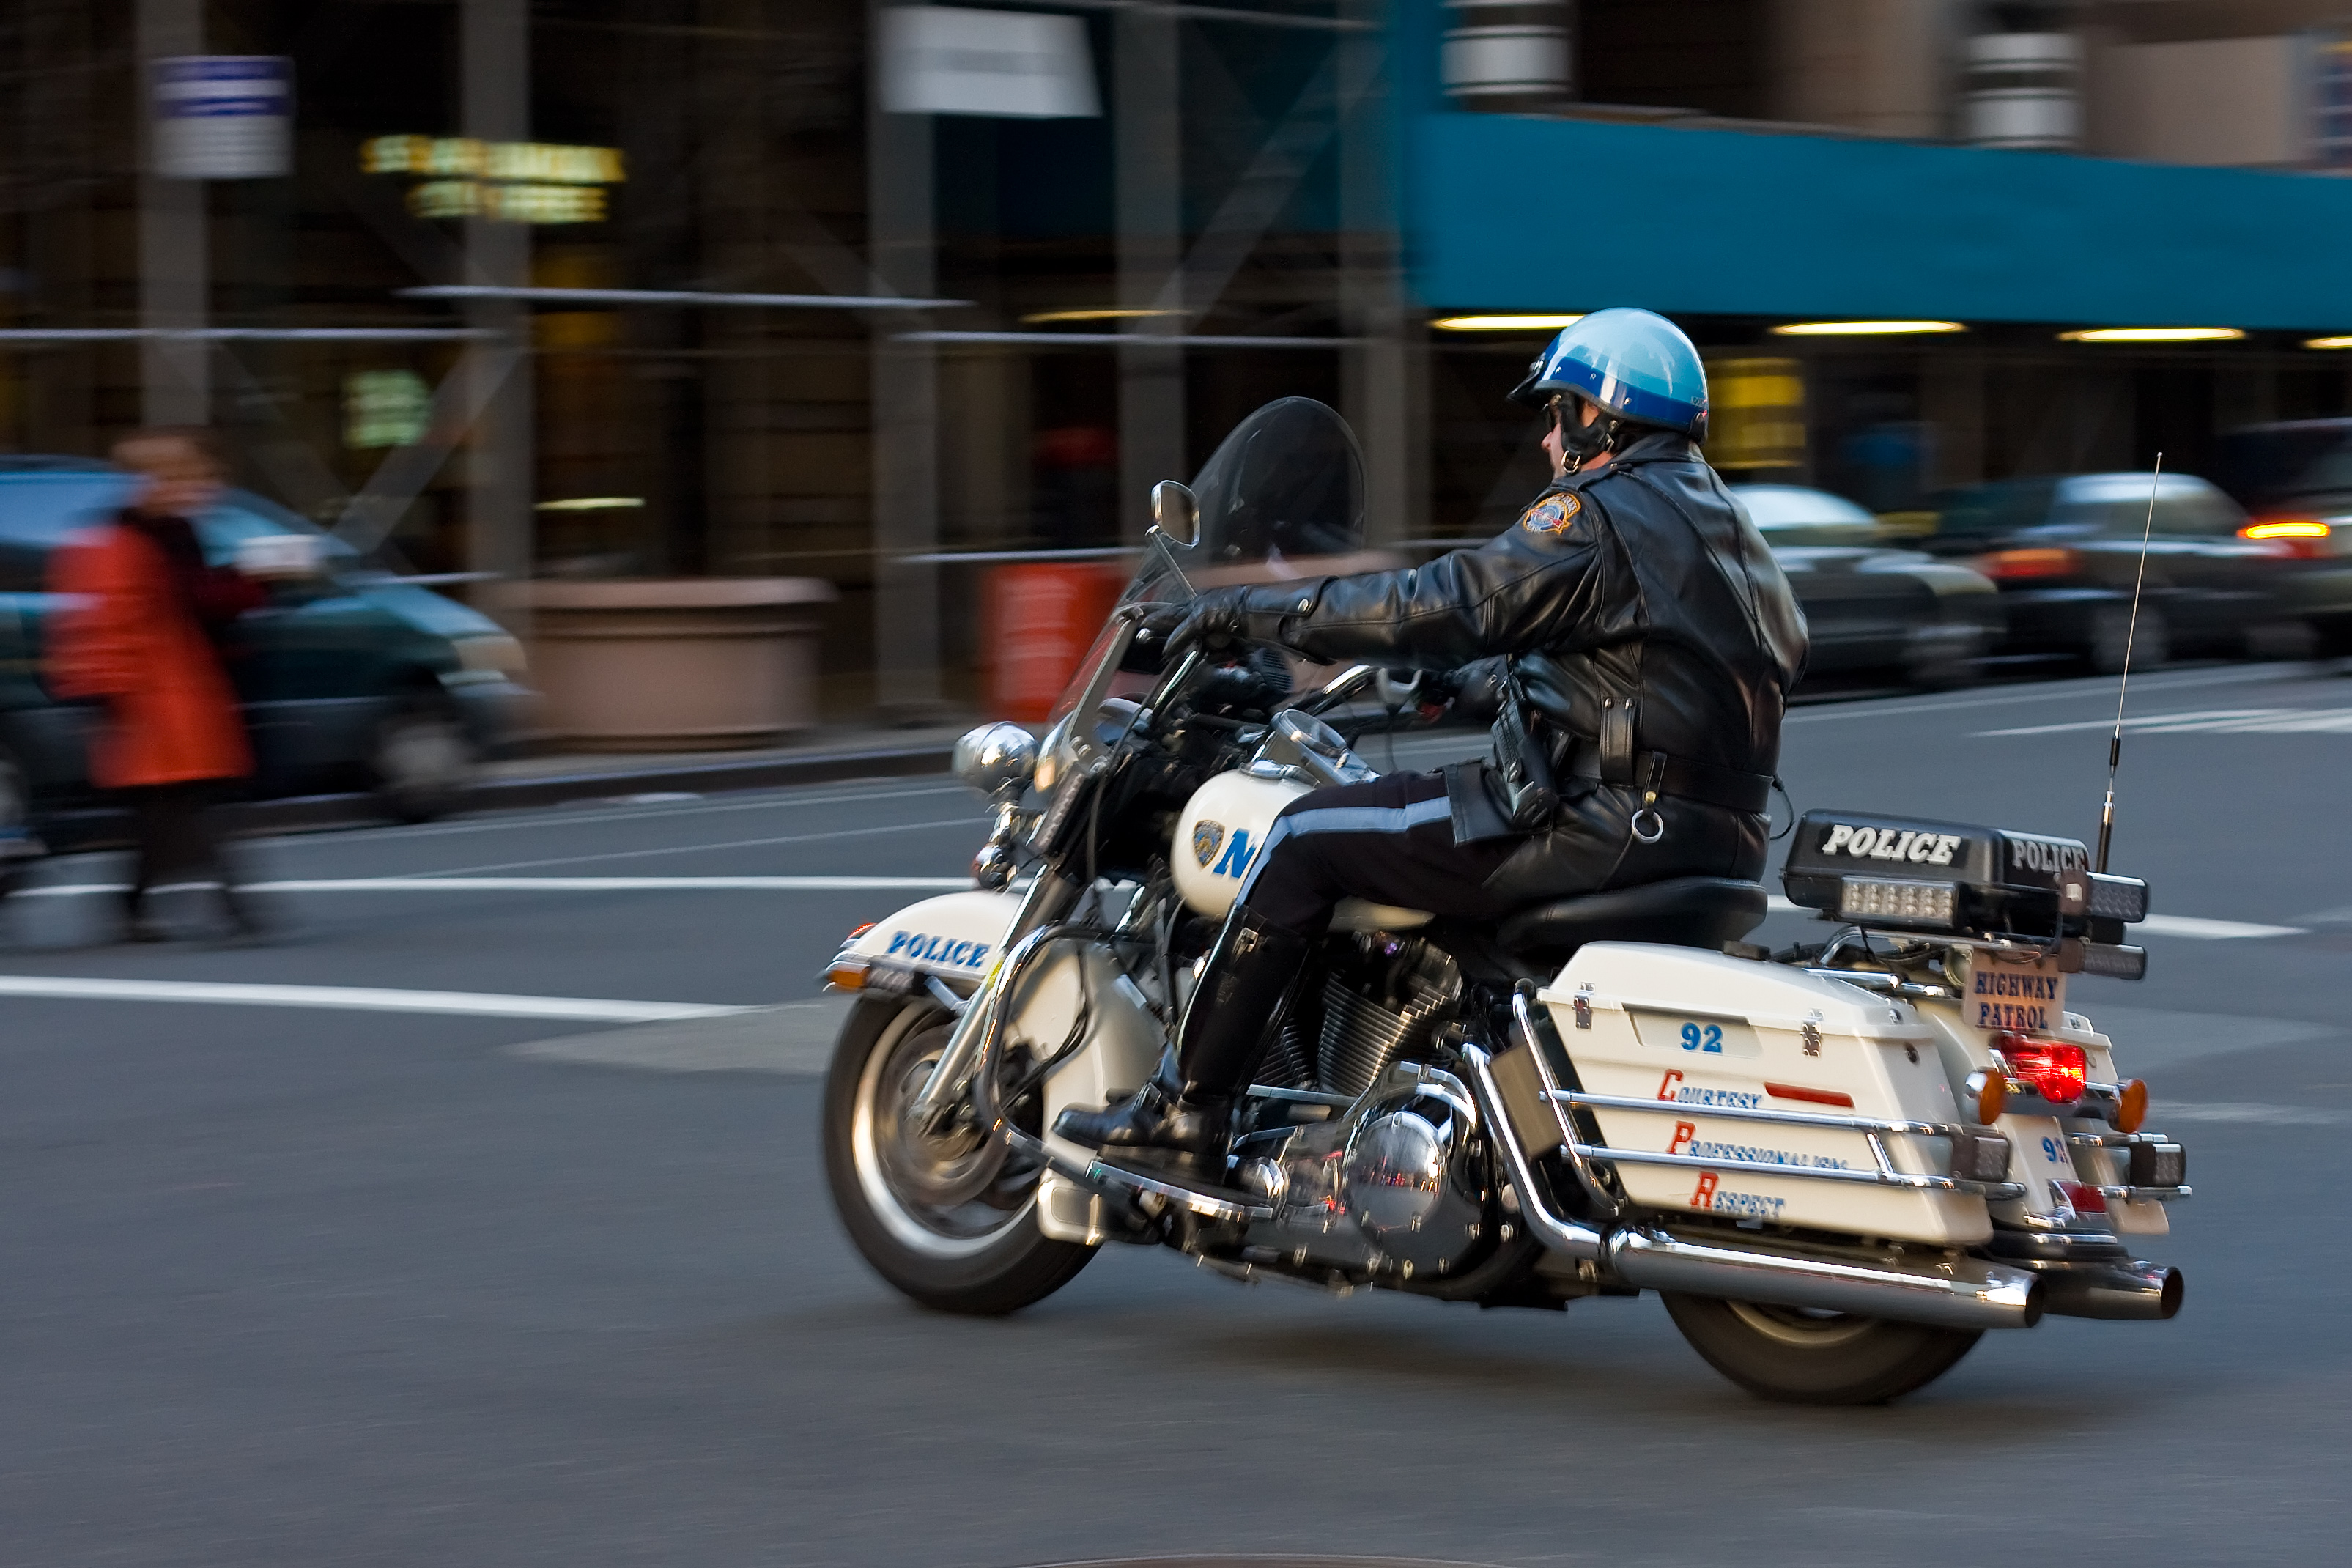 Police Motorcycle Wikiwand